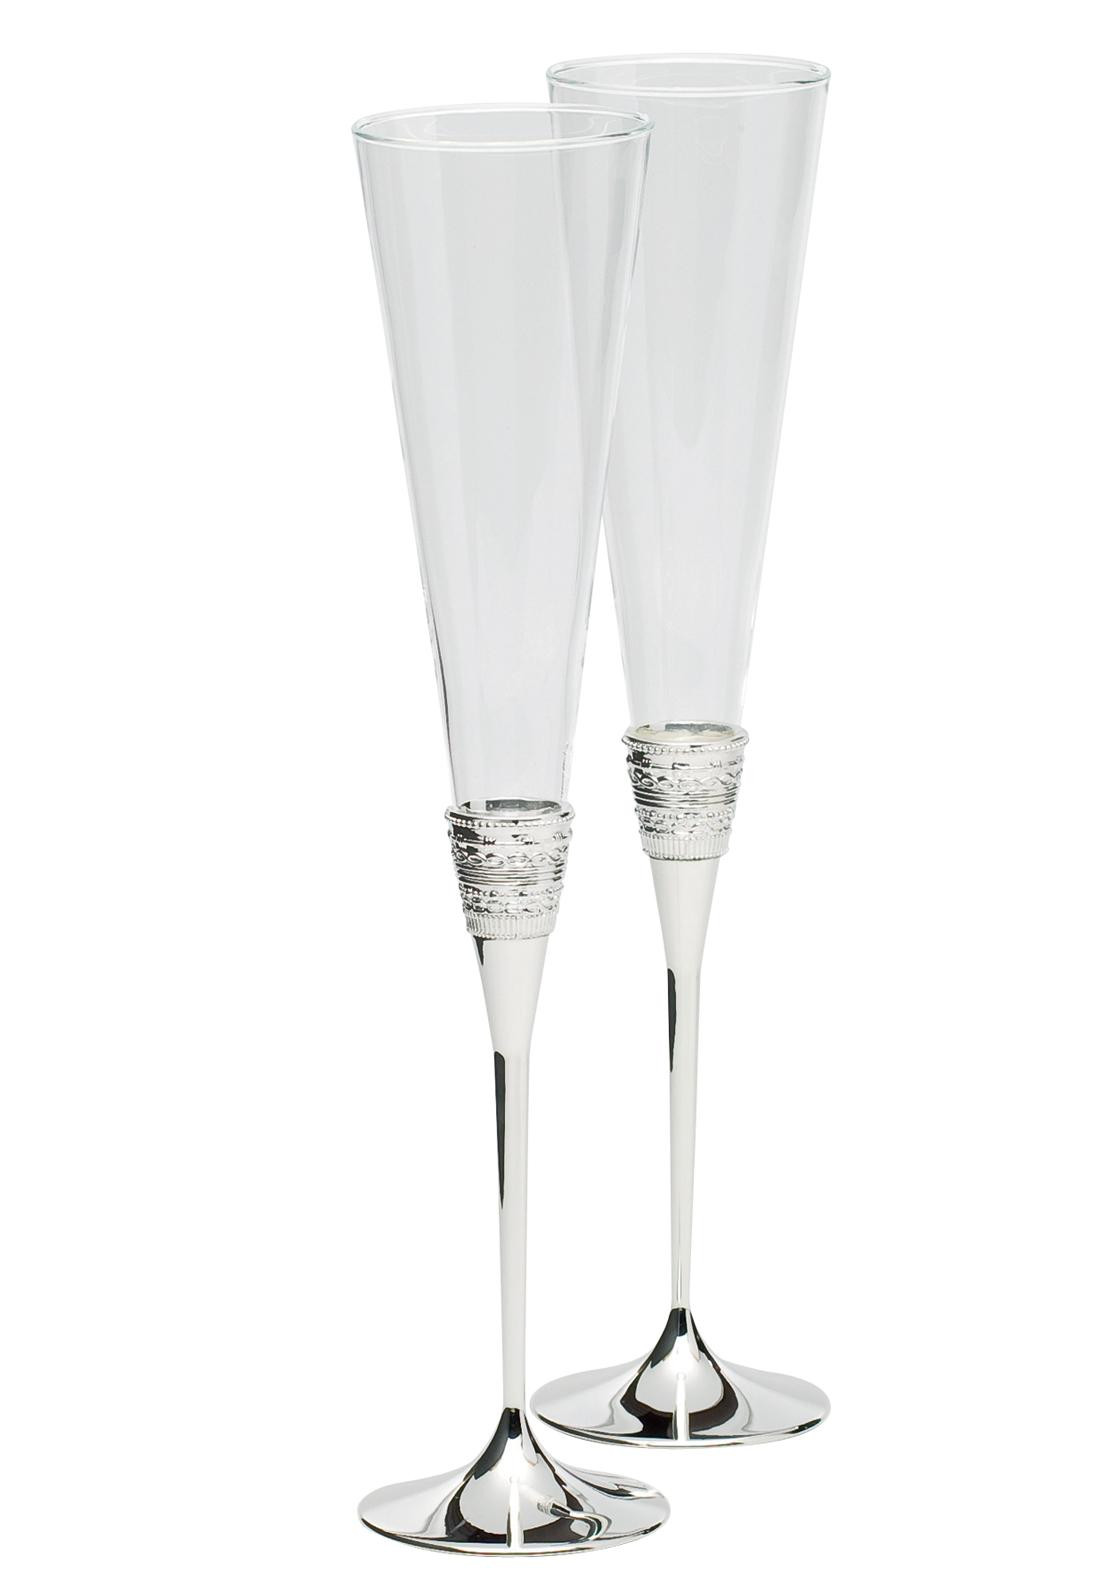 Vera Wang Wedgwood With Love Toasting Flute, Pair